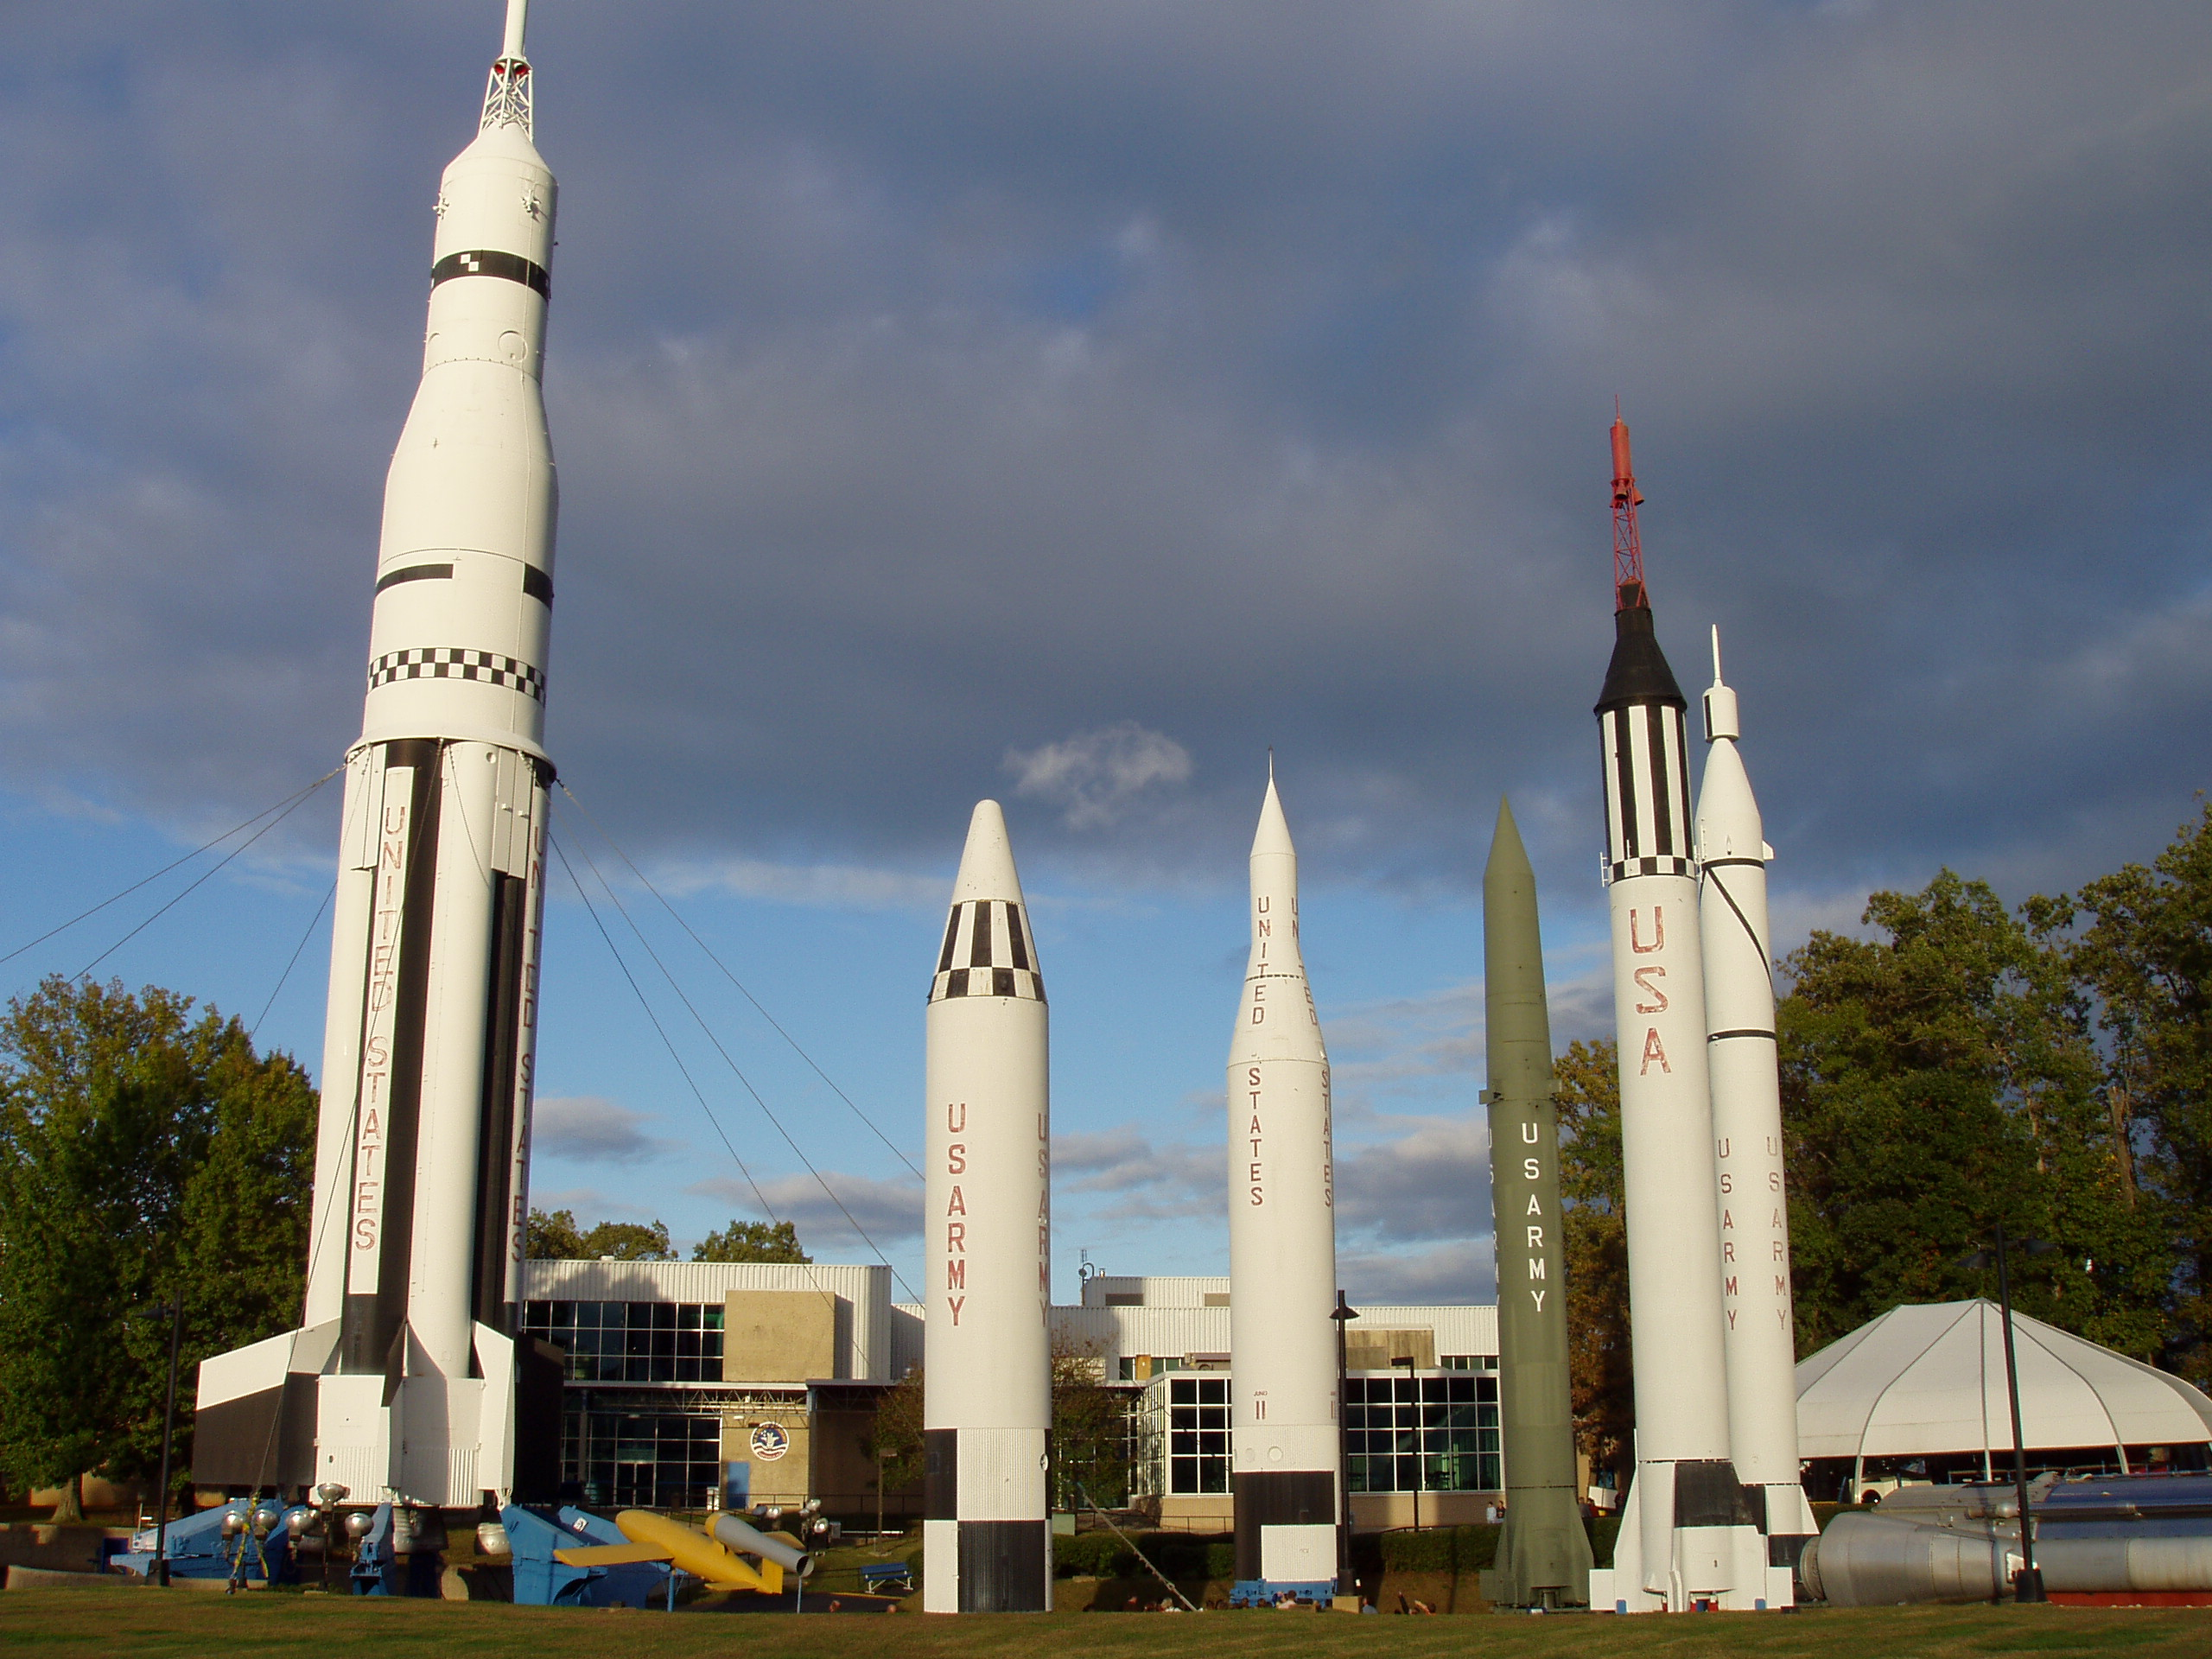 File:Rockets in Huntsville Alabama.JPG